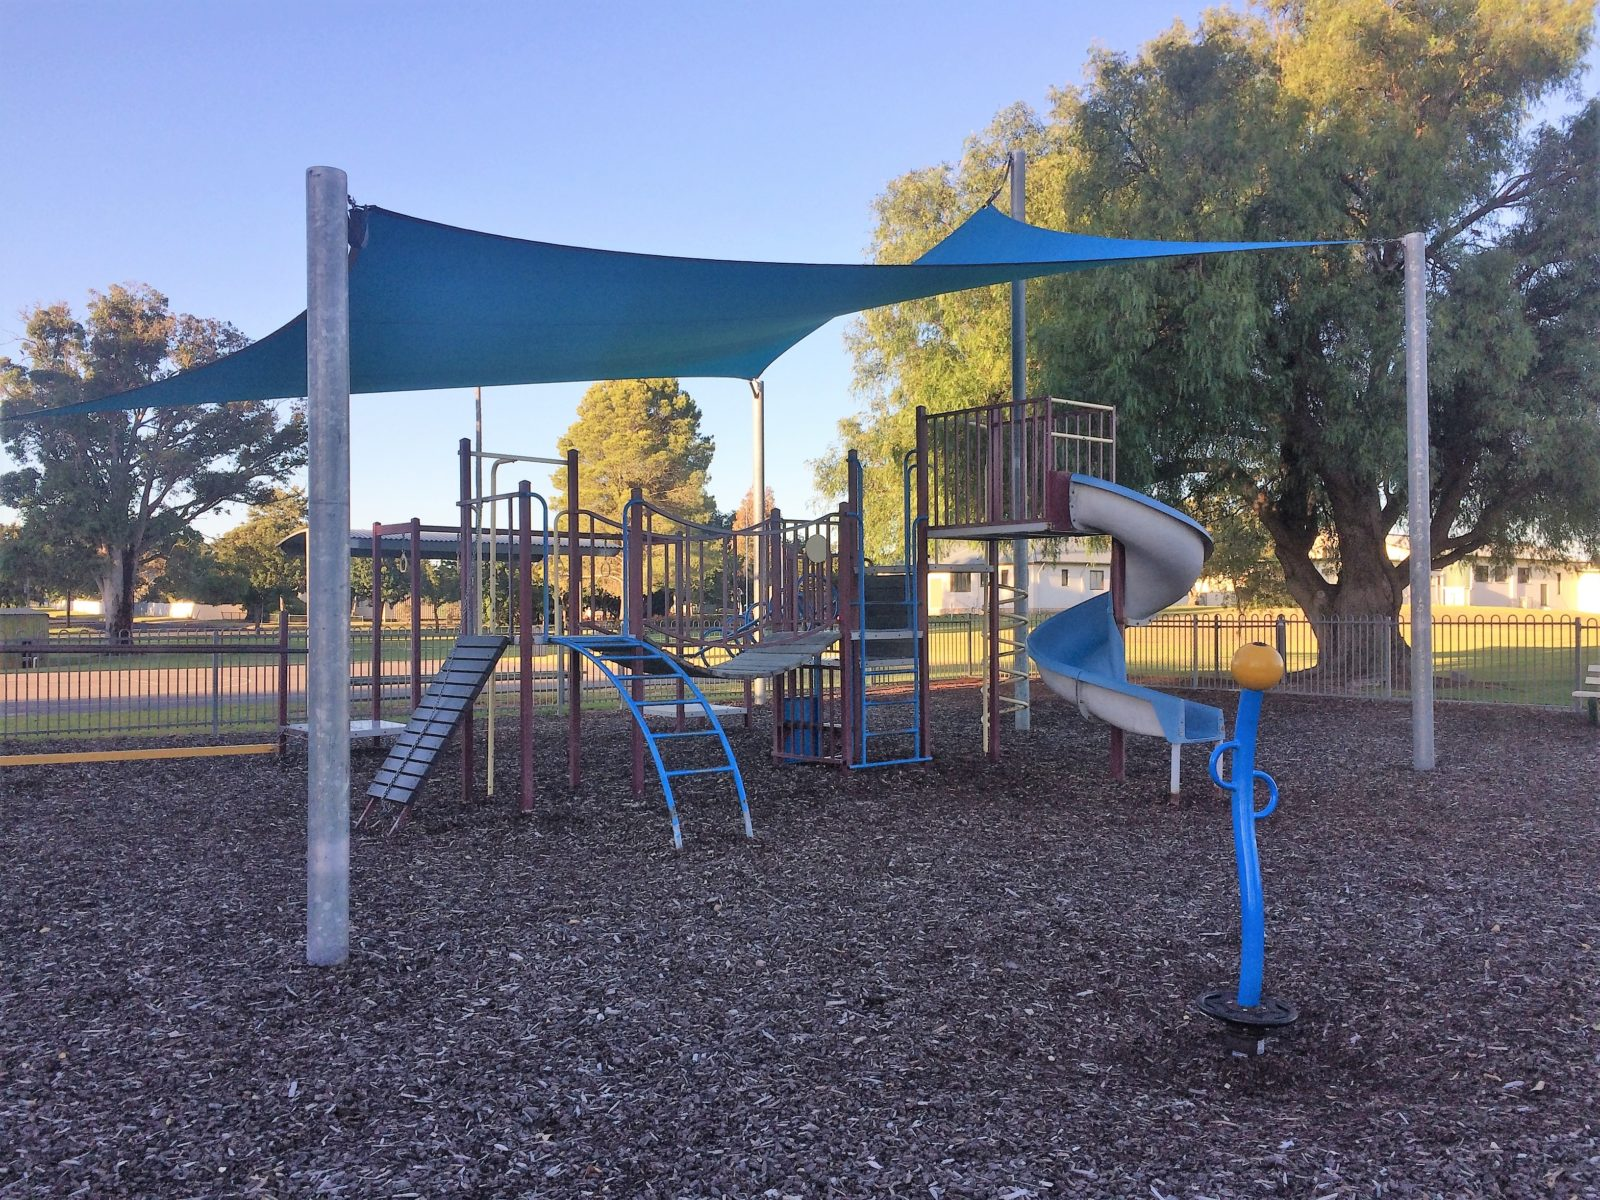 Lucindale Playground